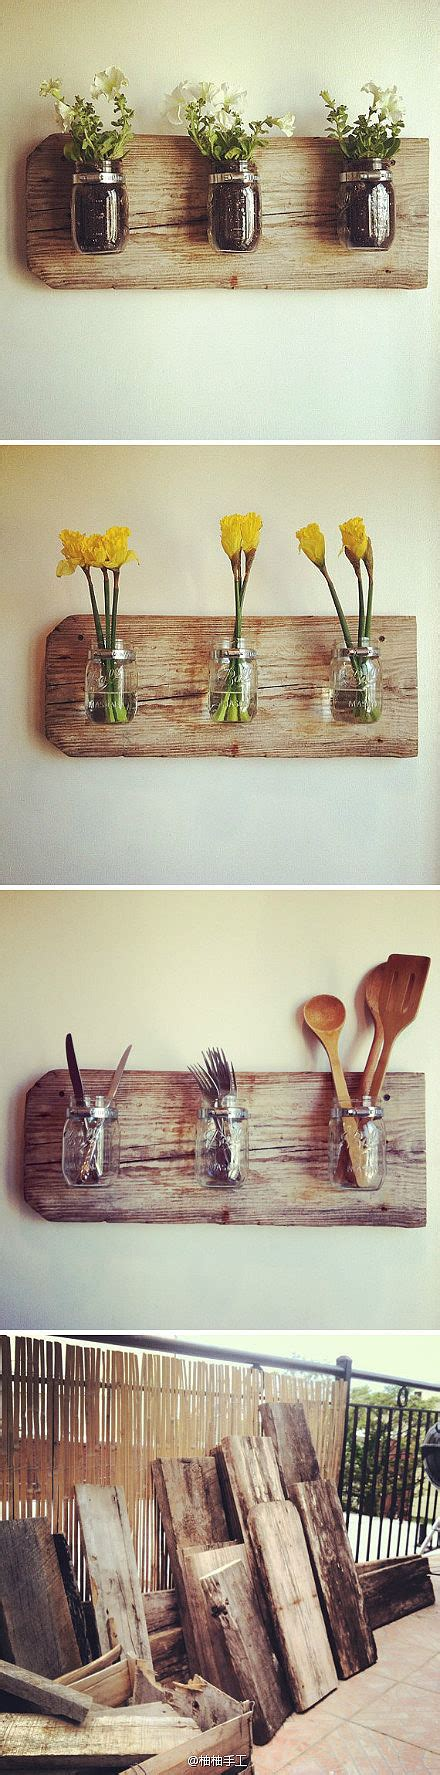 diy jar reclaimed wood decor all gifts considered